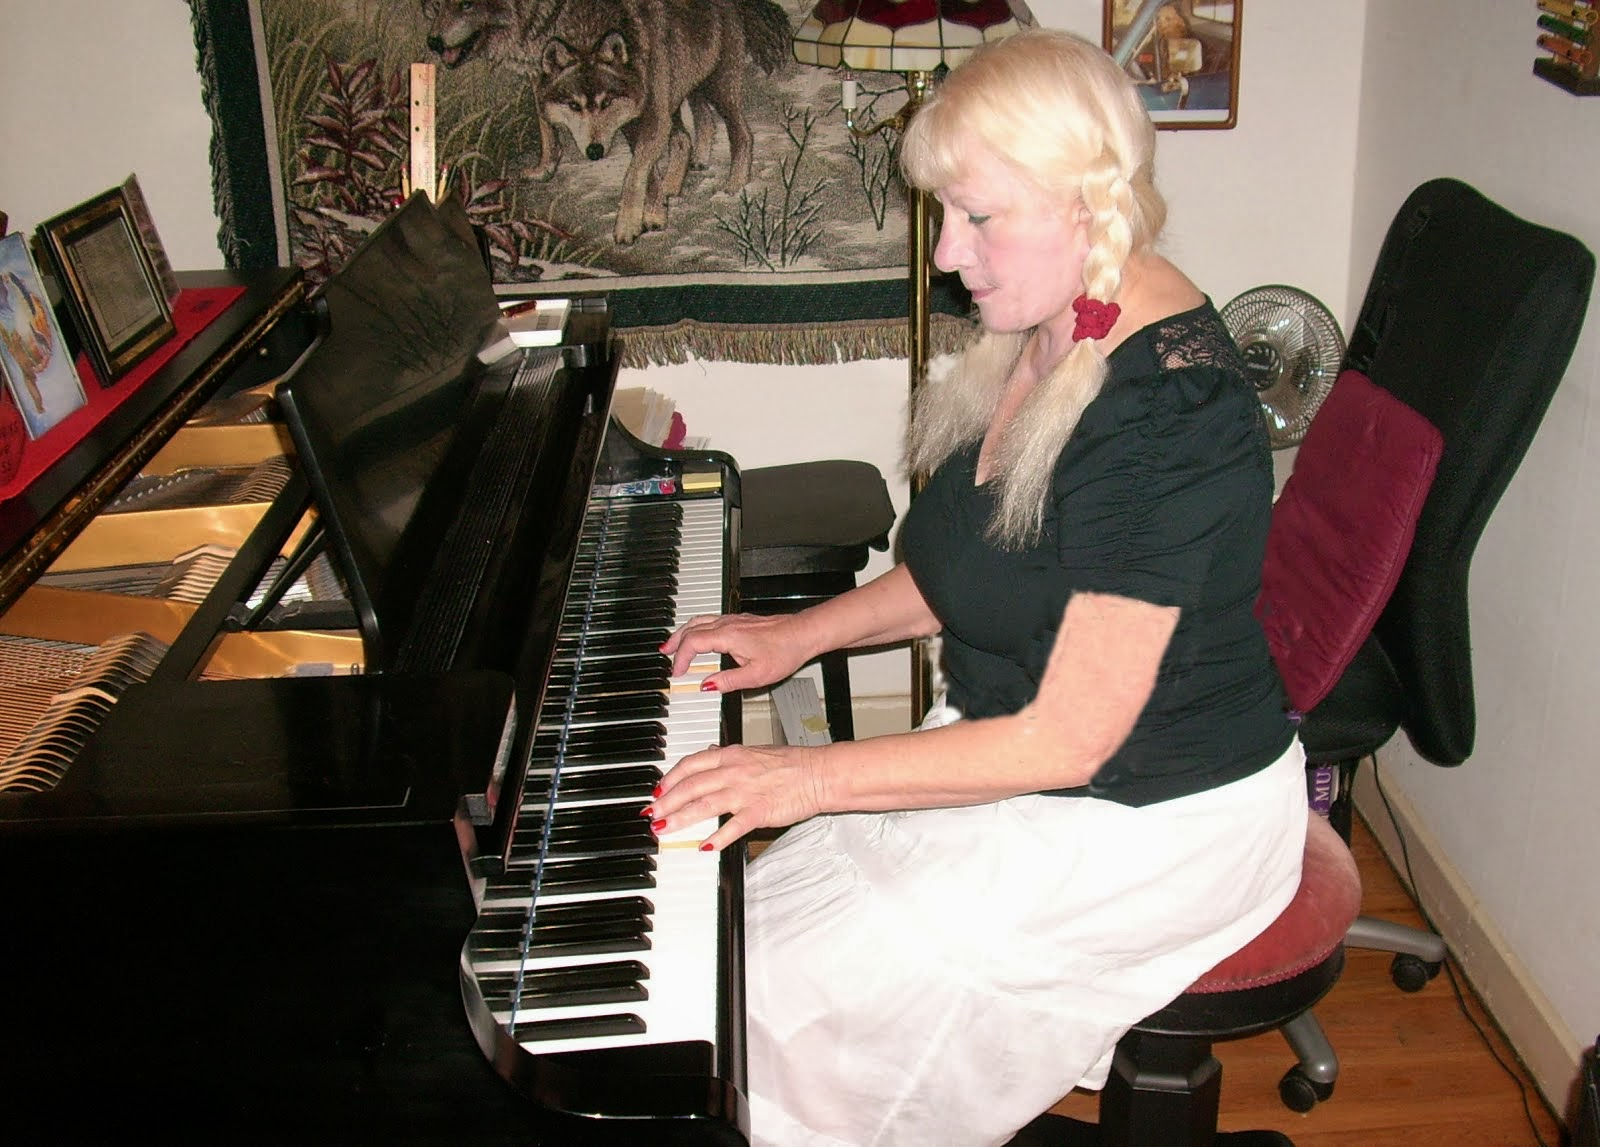 Me and Buddy the piano